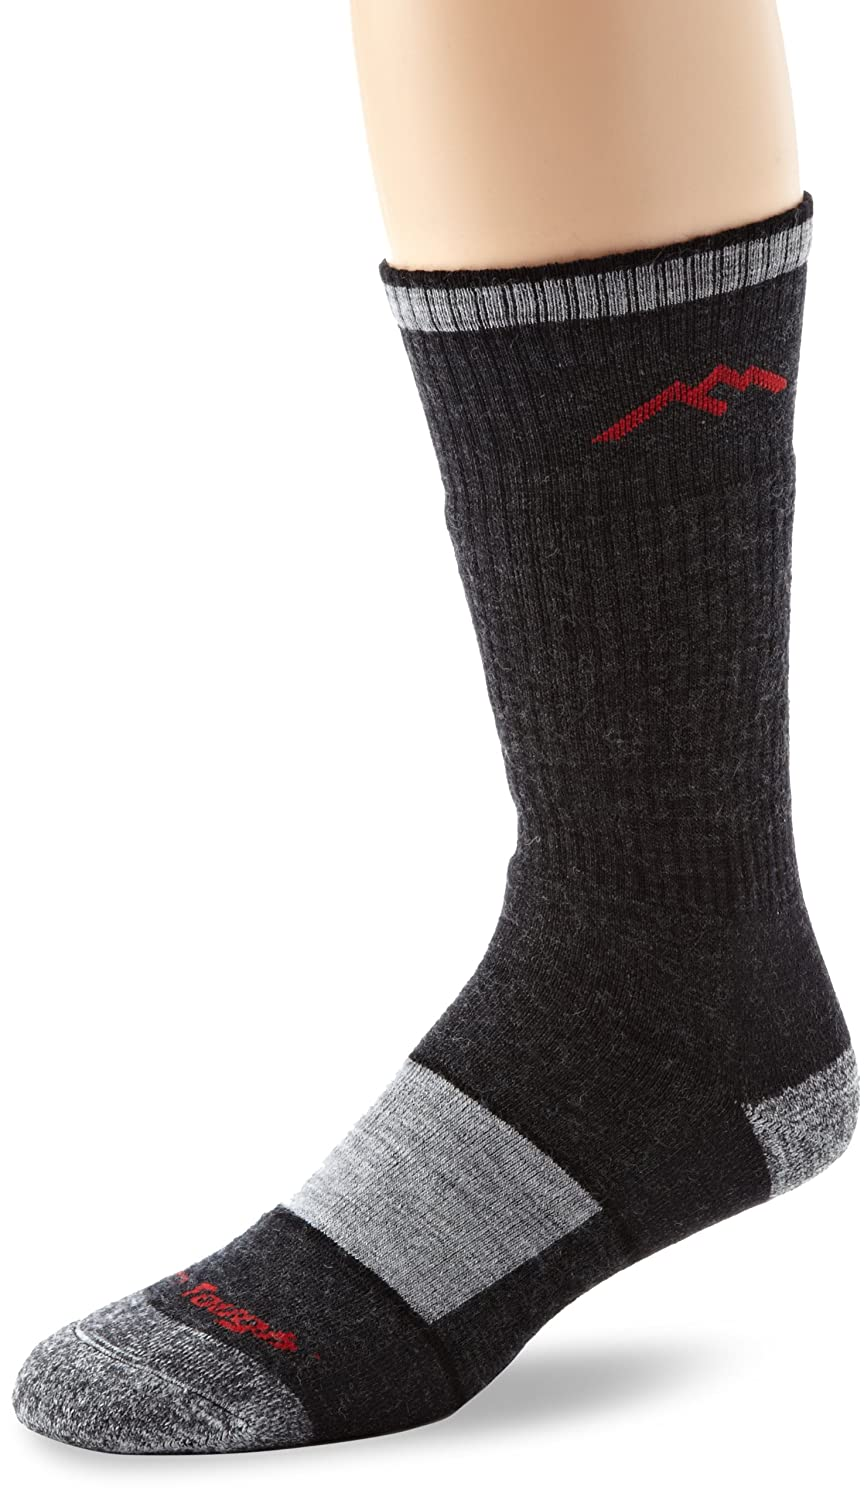 Darn Tough Men's Merino Wool Hiker Boot Sock Full Cushion Socks